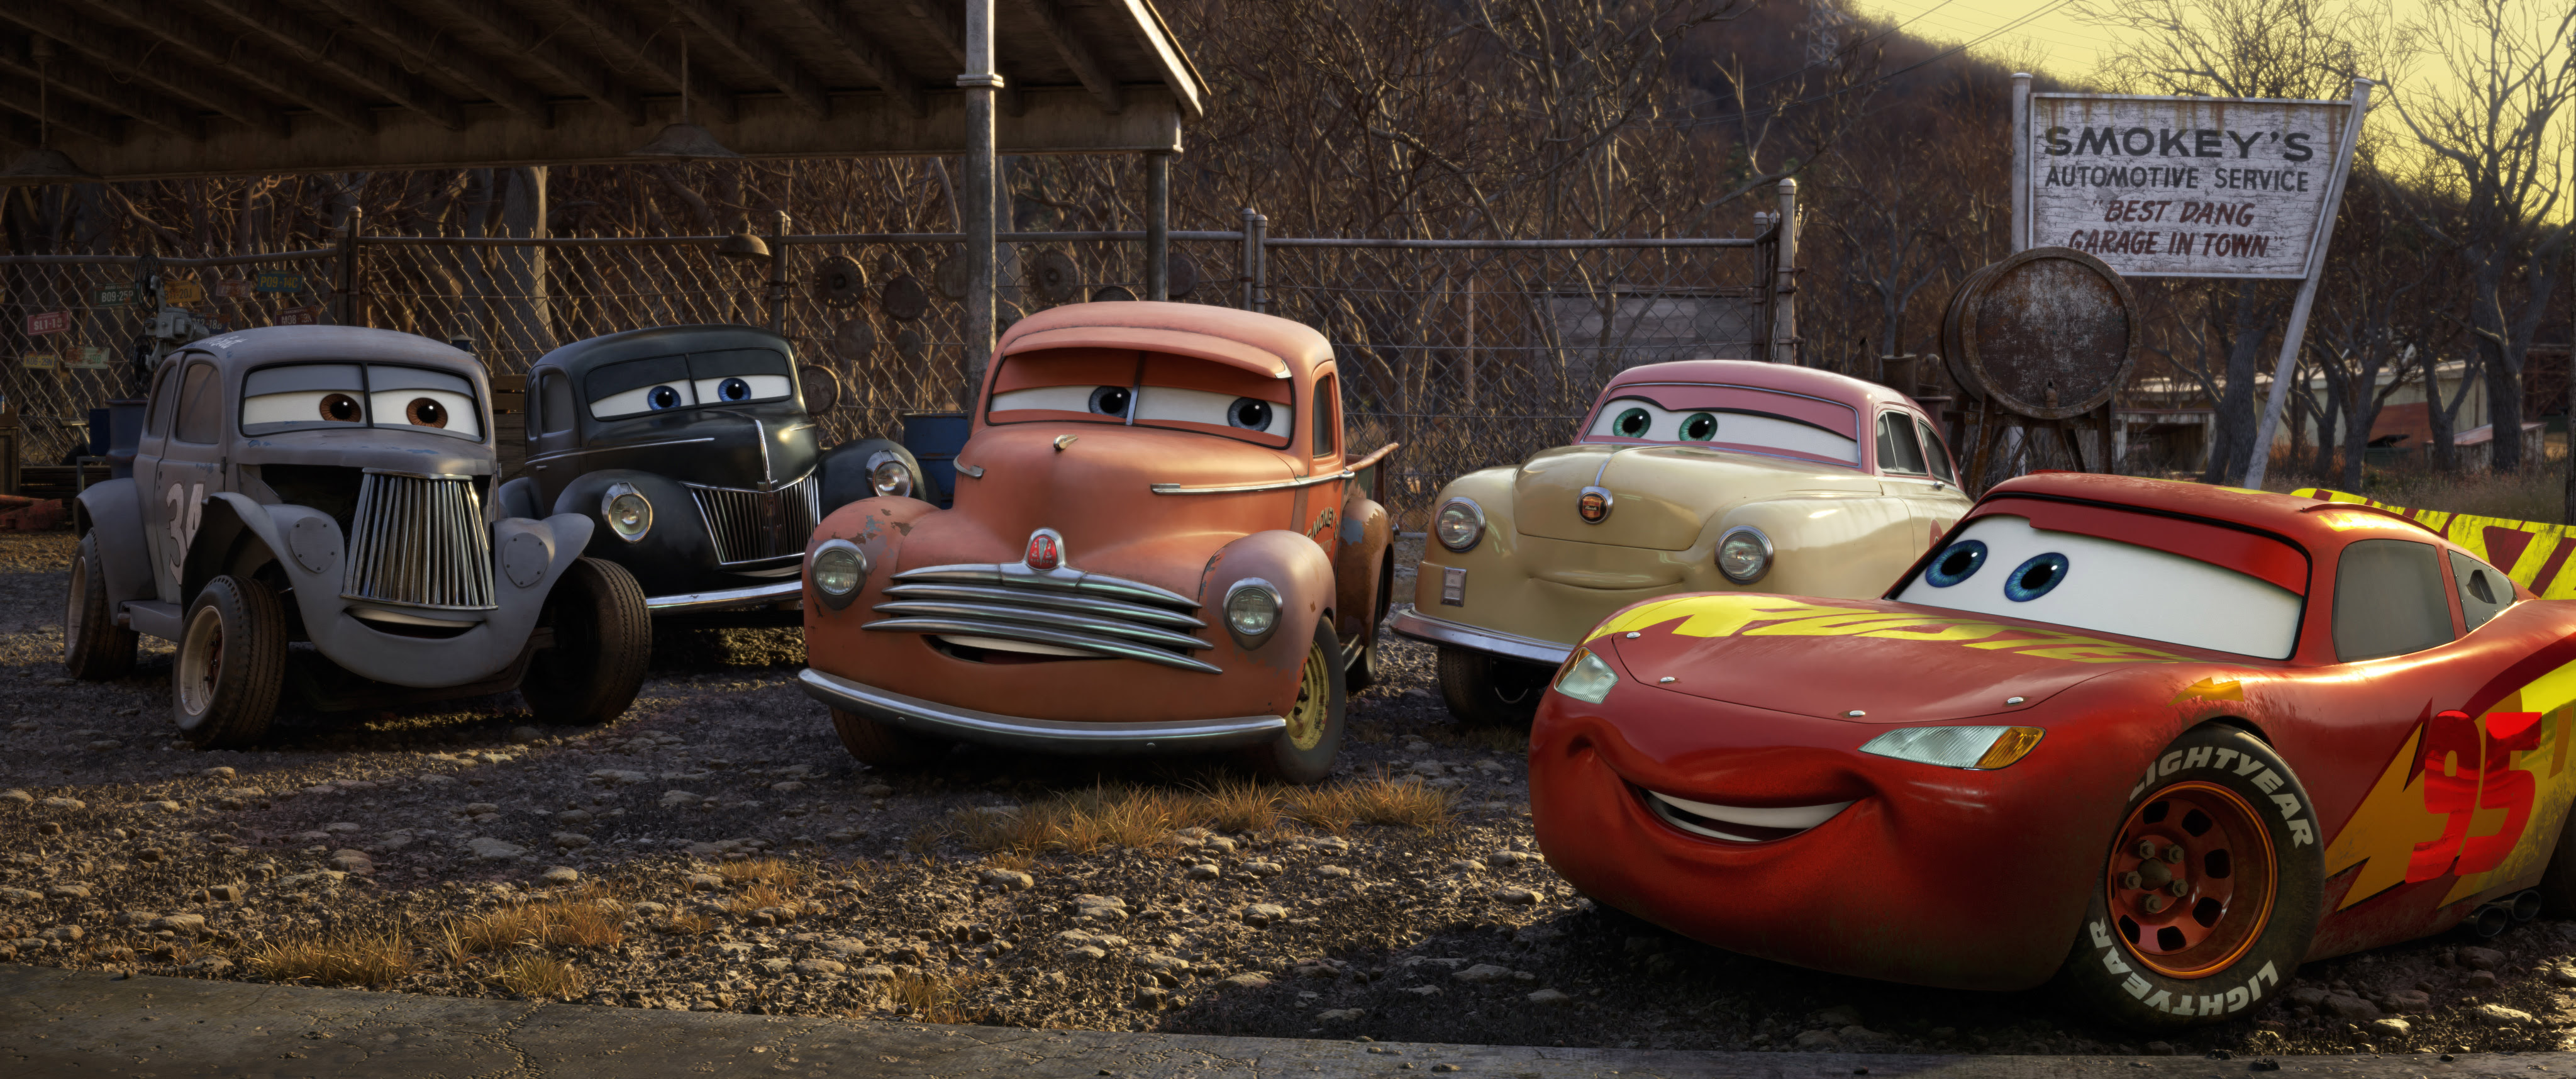 Cars 3 2017 Animated Movie, HD Movies, 4k Wallpapers, Images, Backgrounds, Photos and Pictures